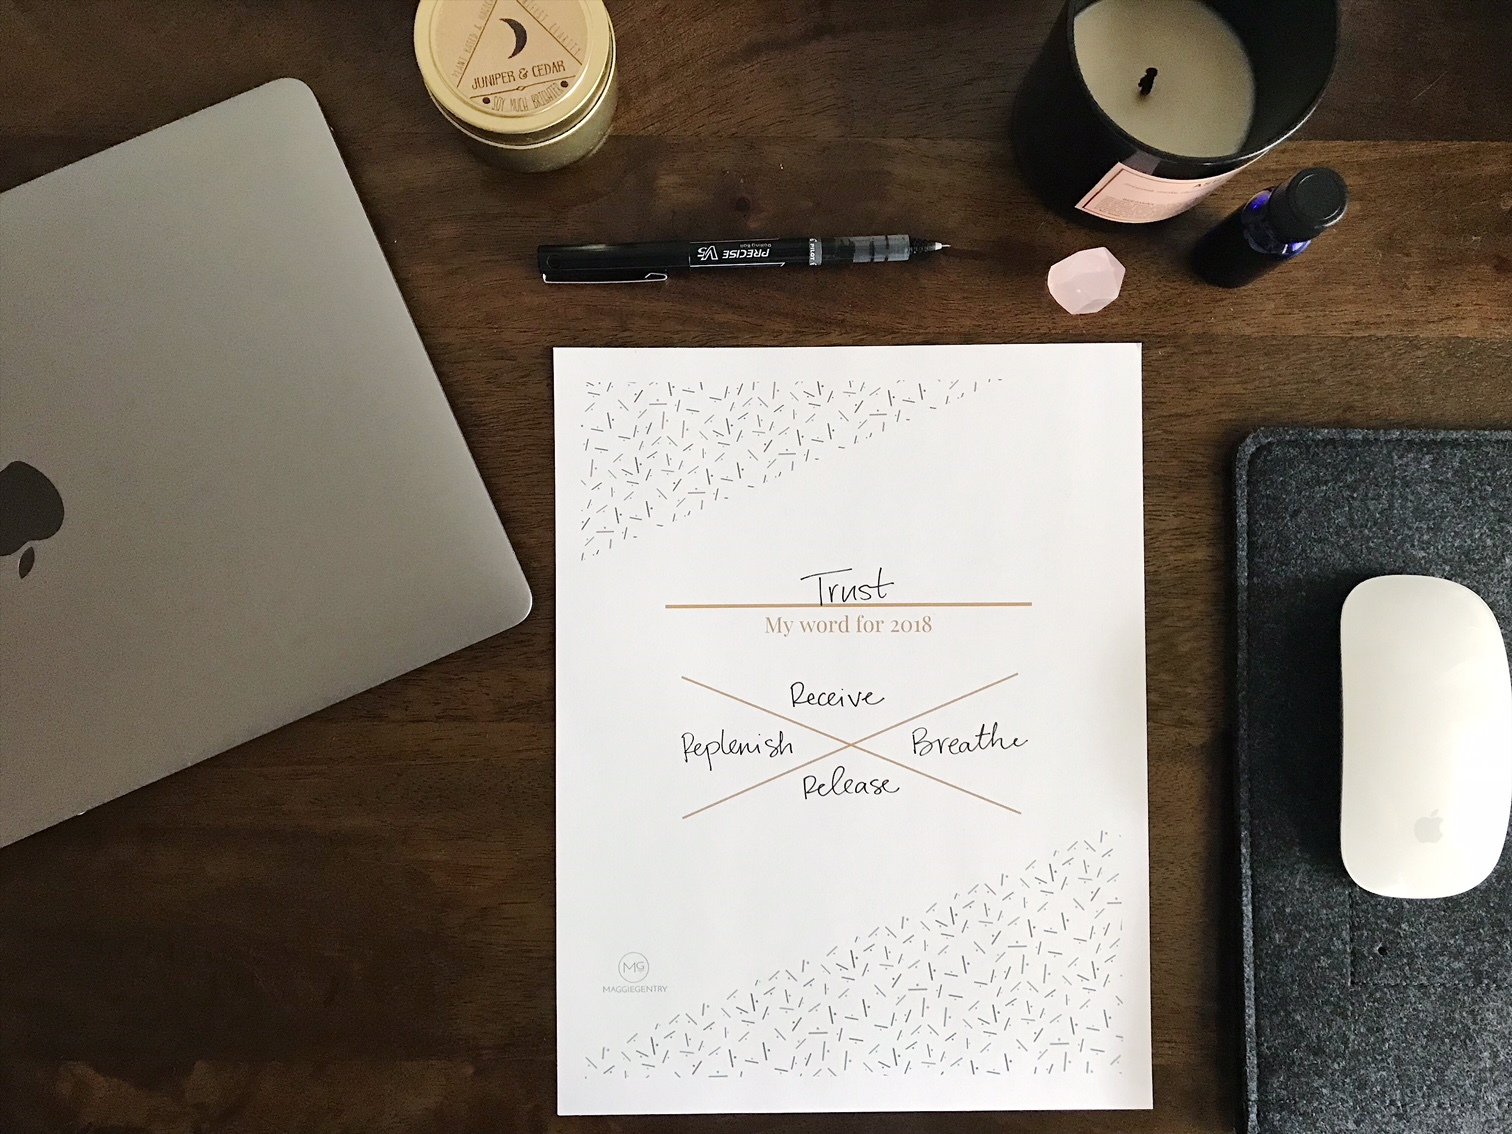 With the new year upon us, many of us are sharing our resolutions. In an attempt to create more expansive change in my life, I've decided to develop a word, or intention, for the year ahead.